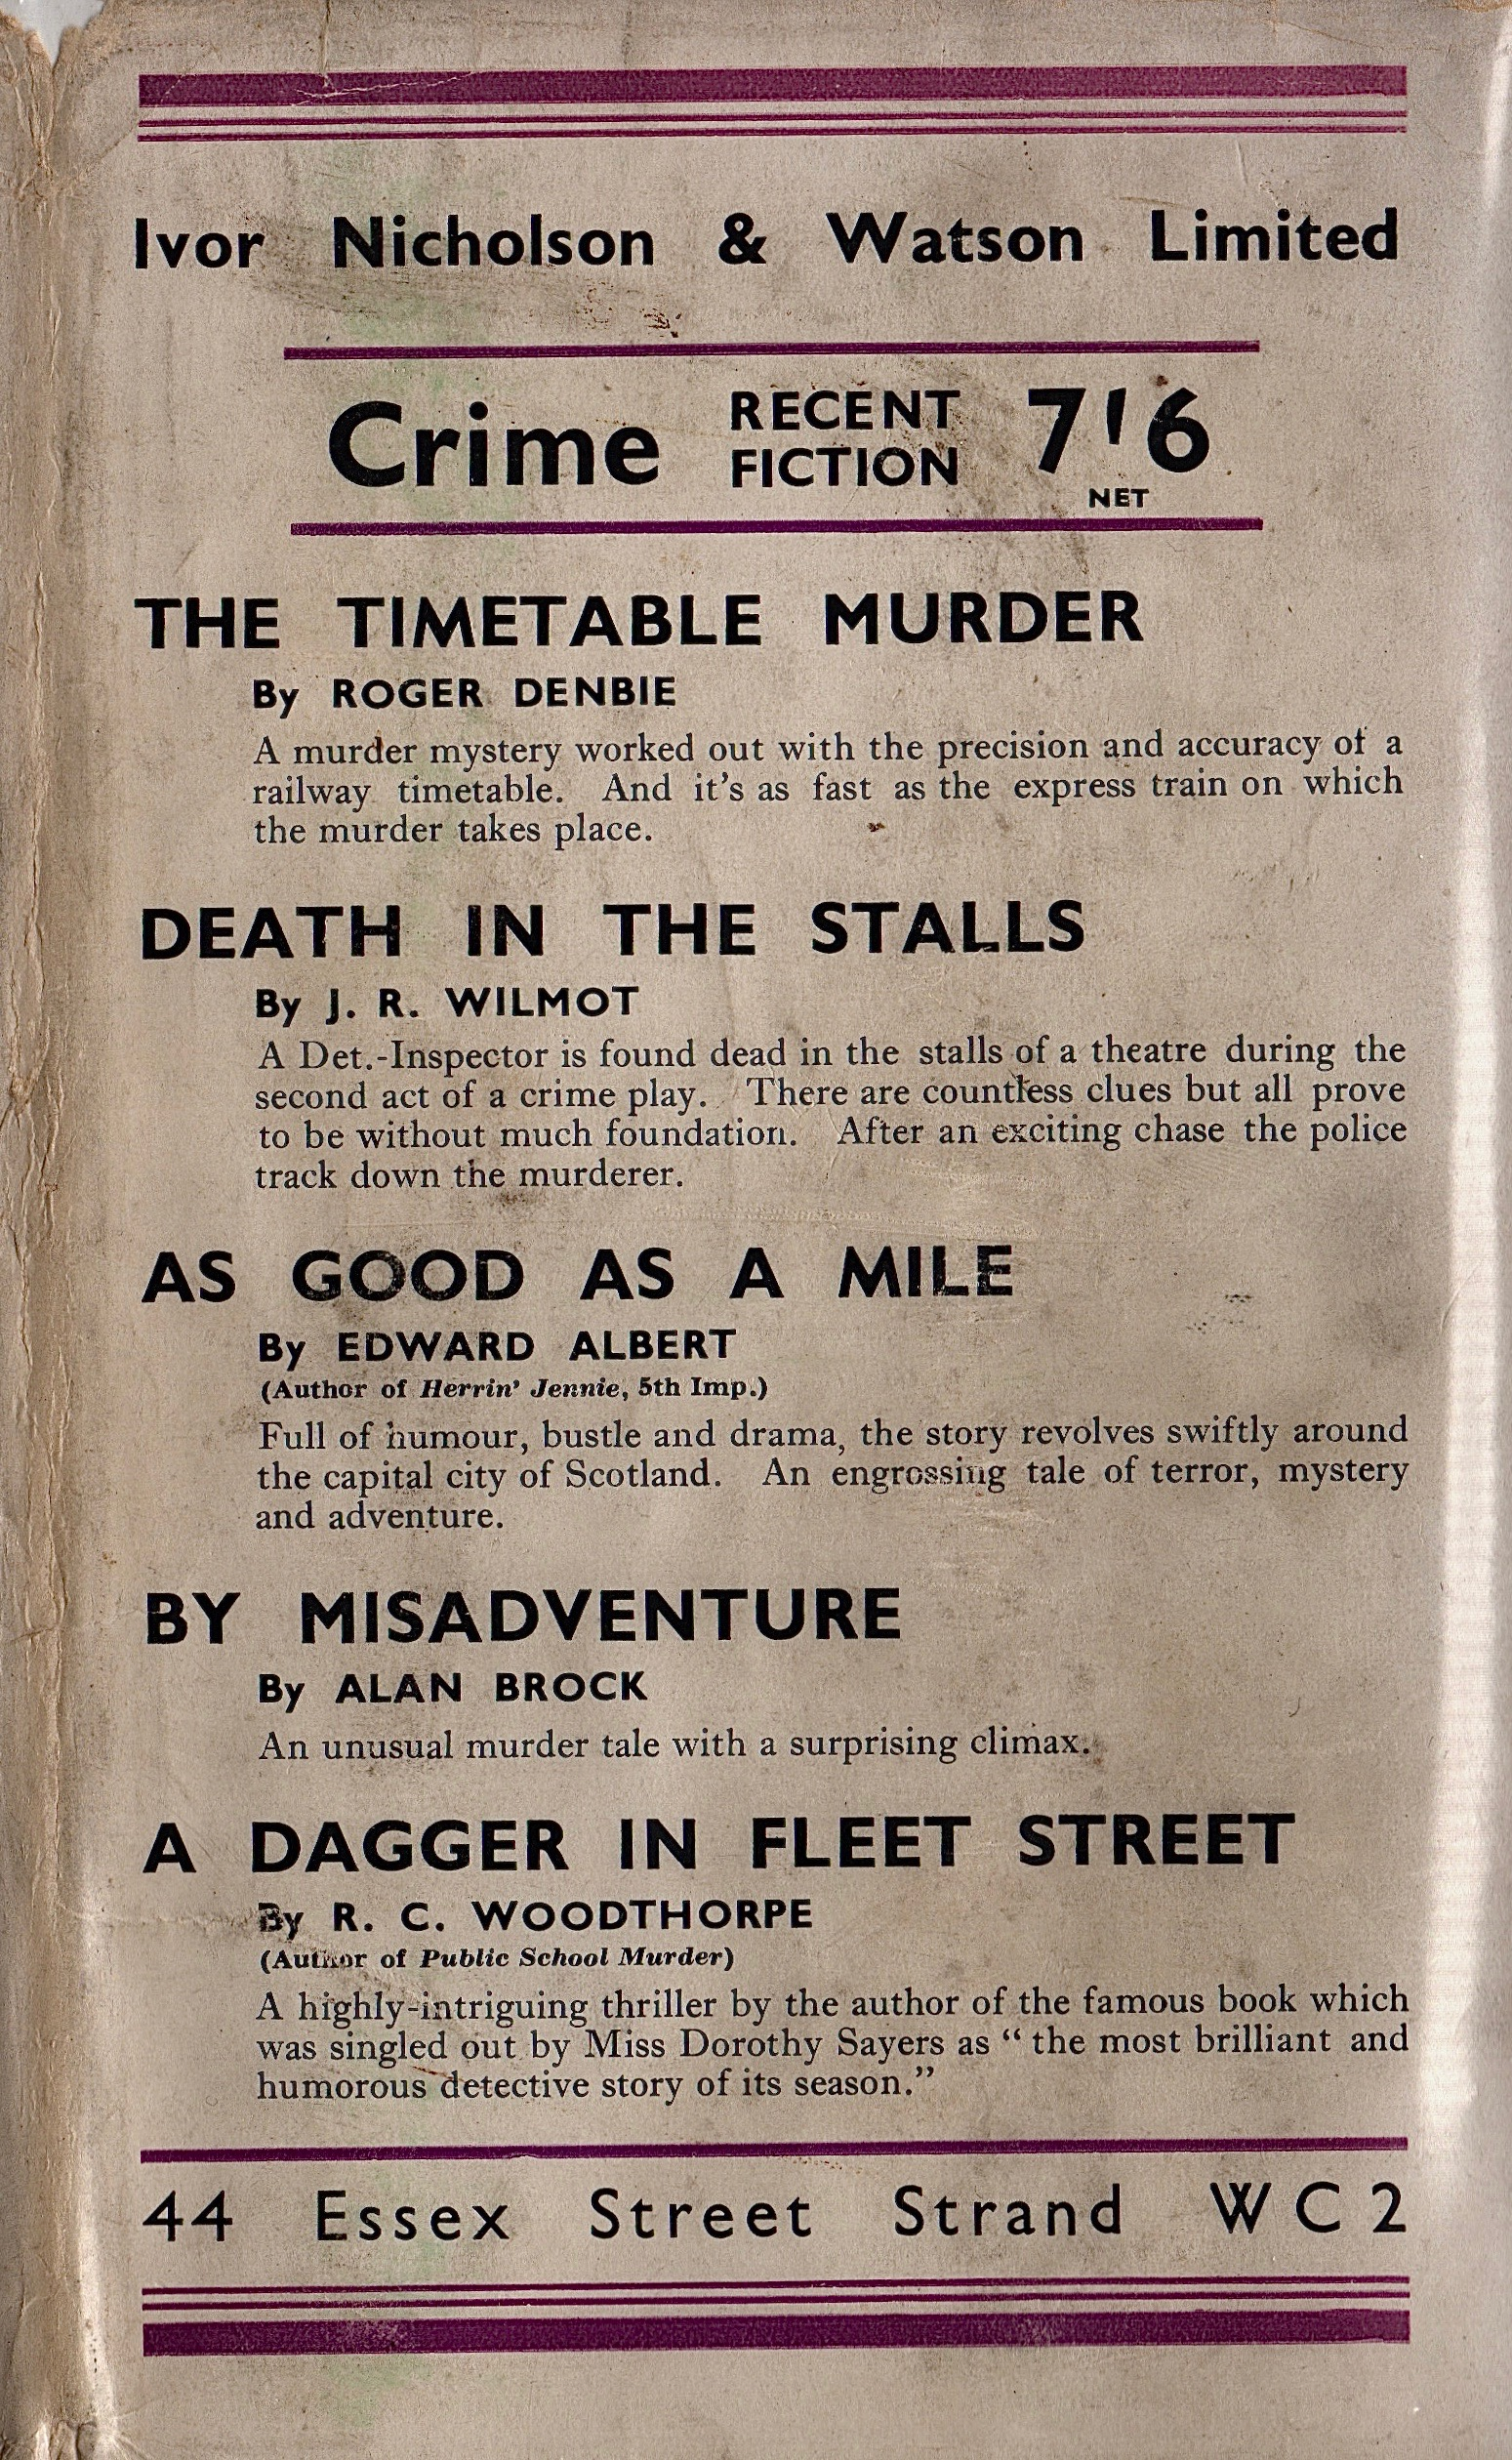 In the United States, Macmillan published  Private Life  as part of its biography line of books. Ivor Nicholson and Watson saw things differently, and classified Starrett's book in with its crime fiction.